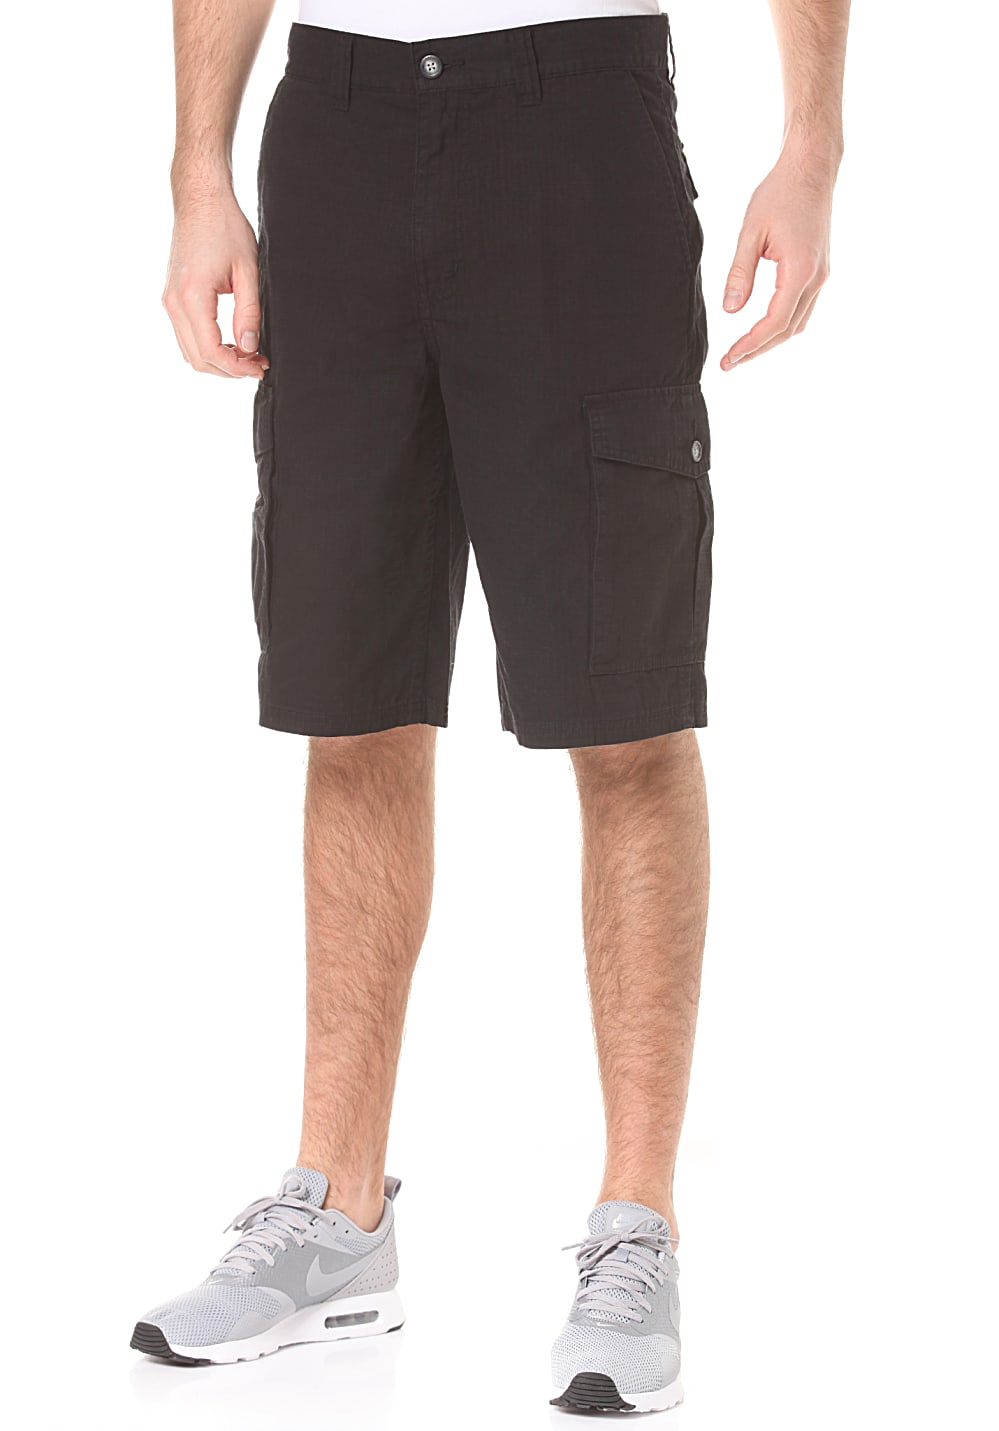 lrg rc ts cargo shorts f r herren schwarz planet sports. Black Bedroom Furniture Sets. Home Design Ideas